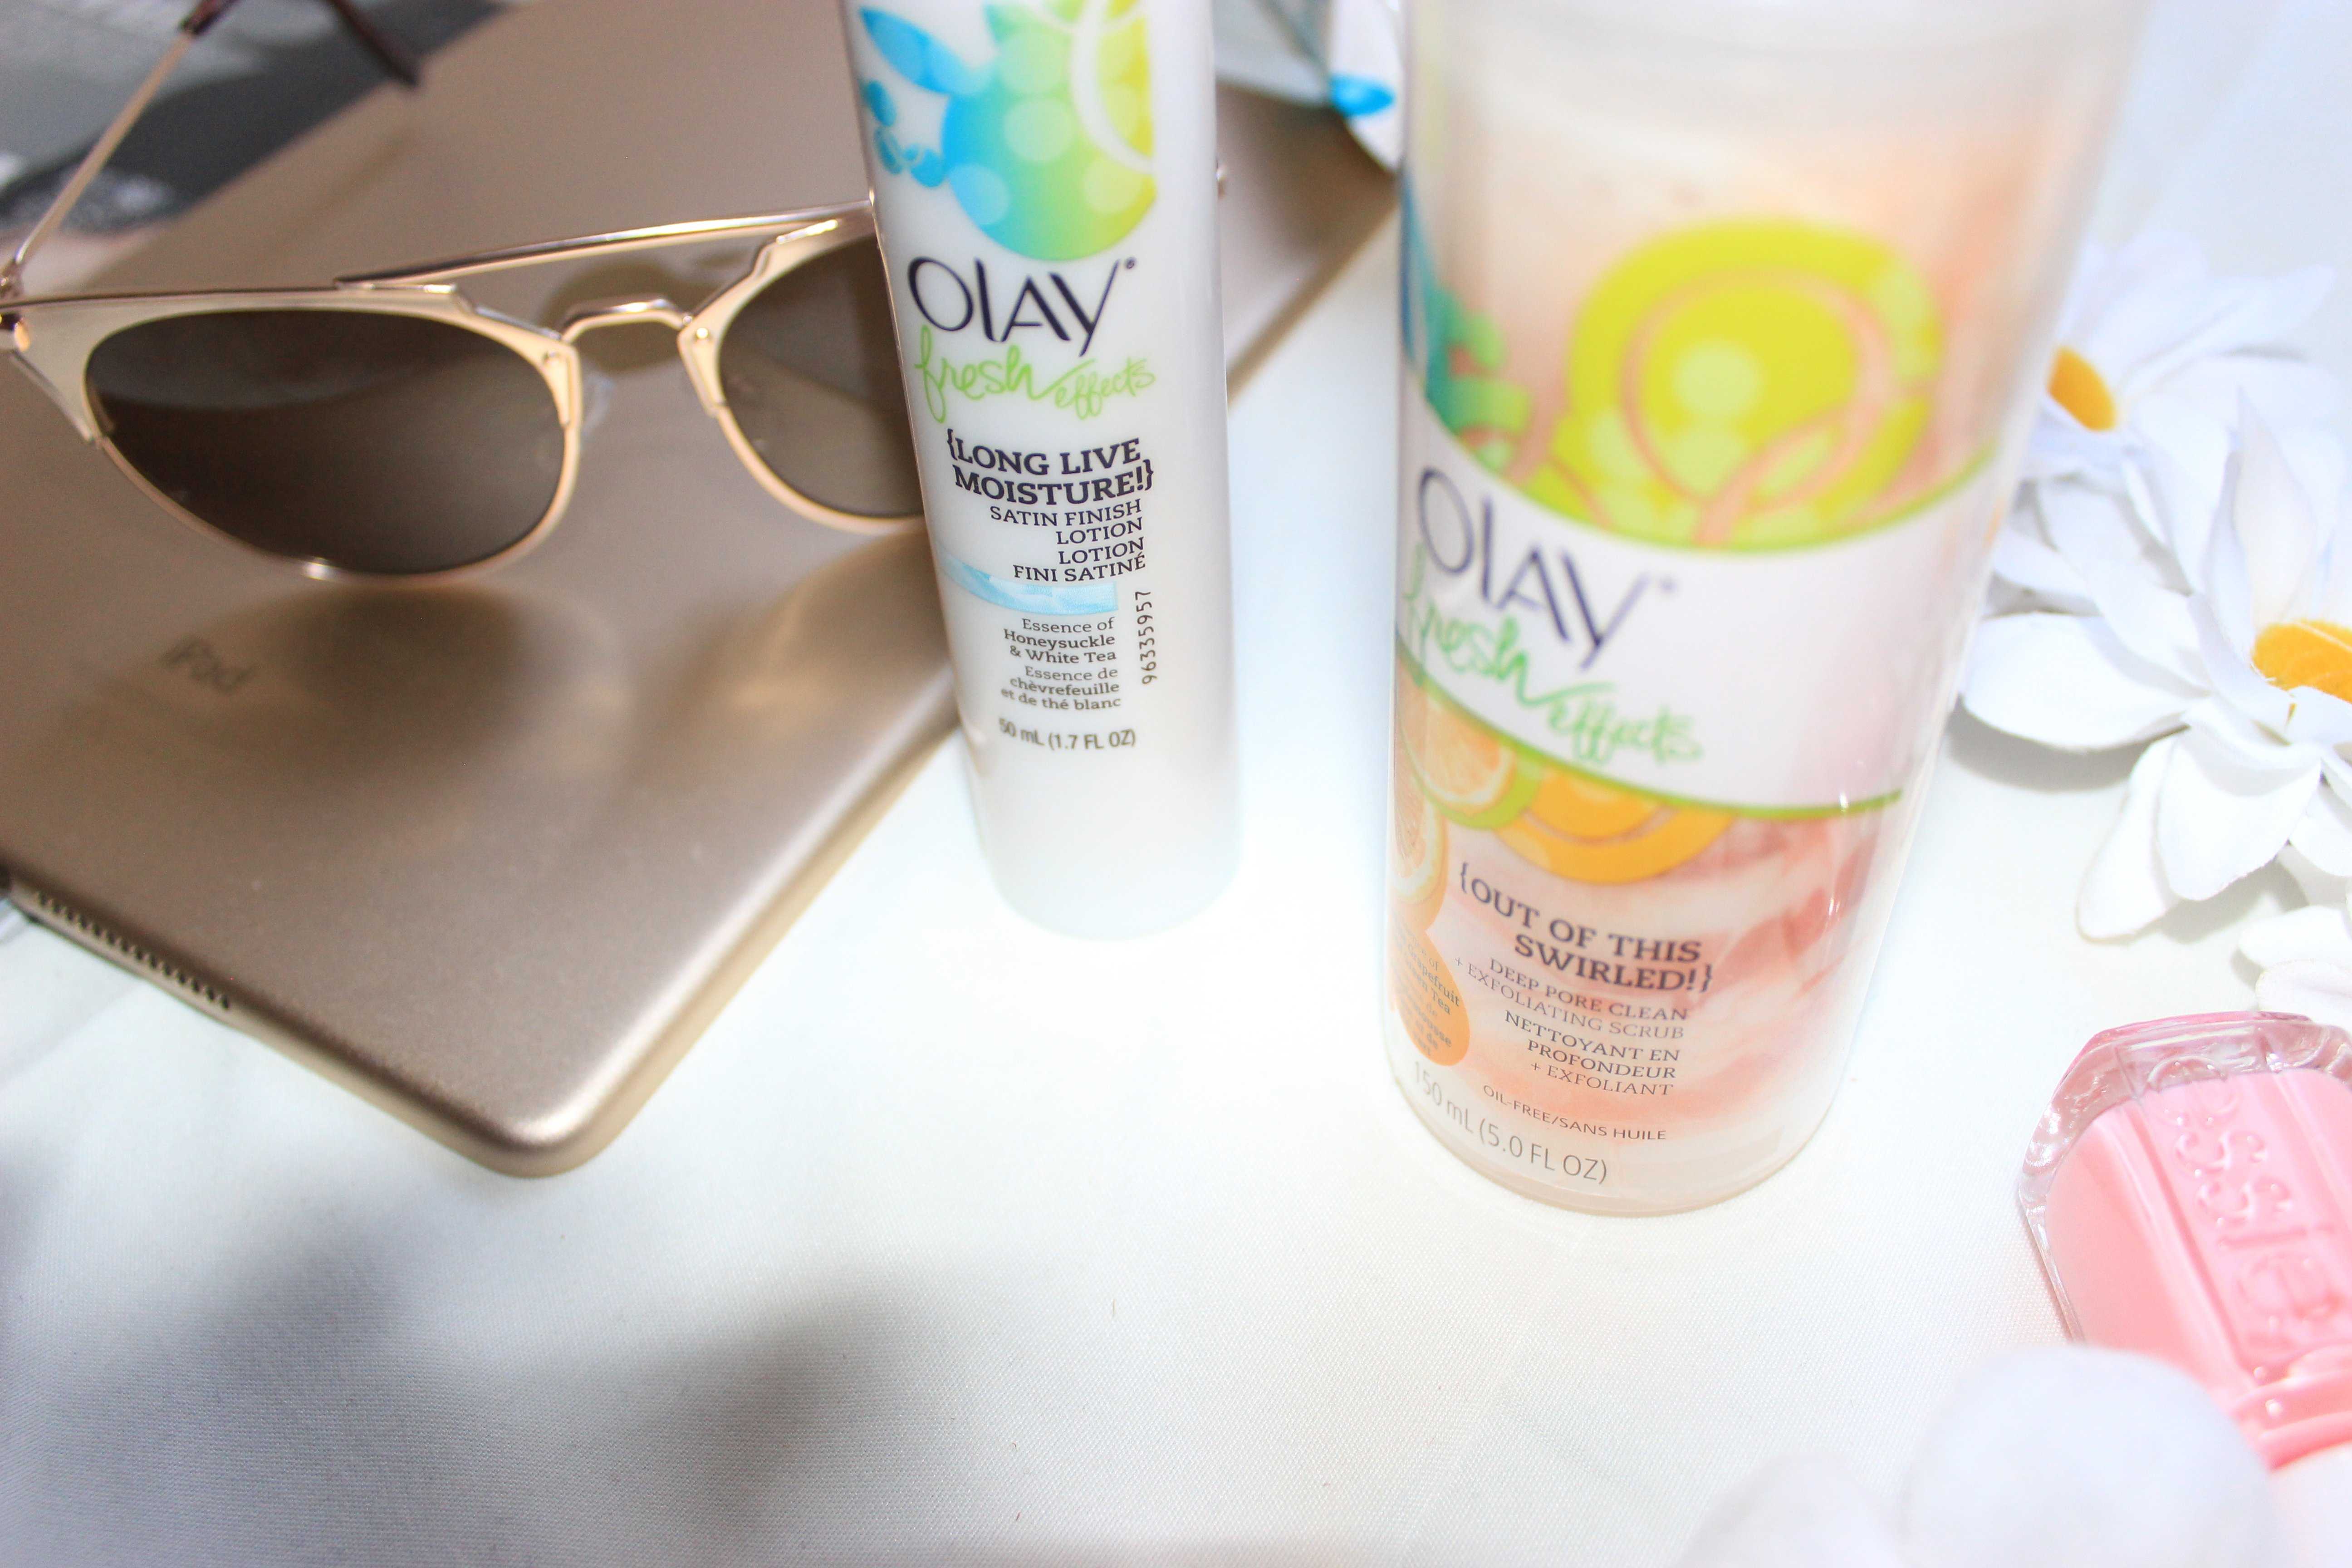 Friday-favorites-Fresh-Effects-SWipe-Out- Refreshing-Makeup-Shine-Shine-Go-Away  -Cleanser-Olay-Fresh-Effects-Out-of-This-Swirled-Scrub-Olay-Fresh-Effects-Dew-Over-Hydrating-Gel-Olay-Fresh-Effects- Long- Live Moisture-Oohlalablog-3